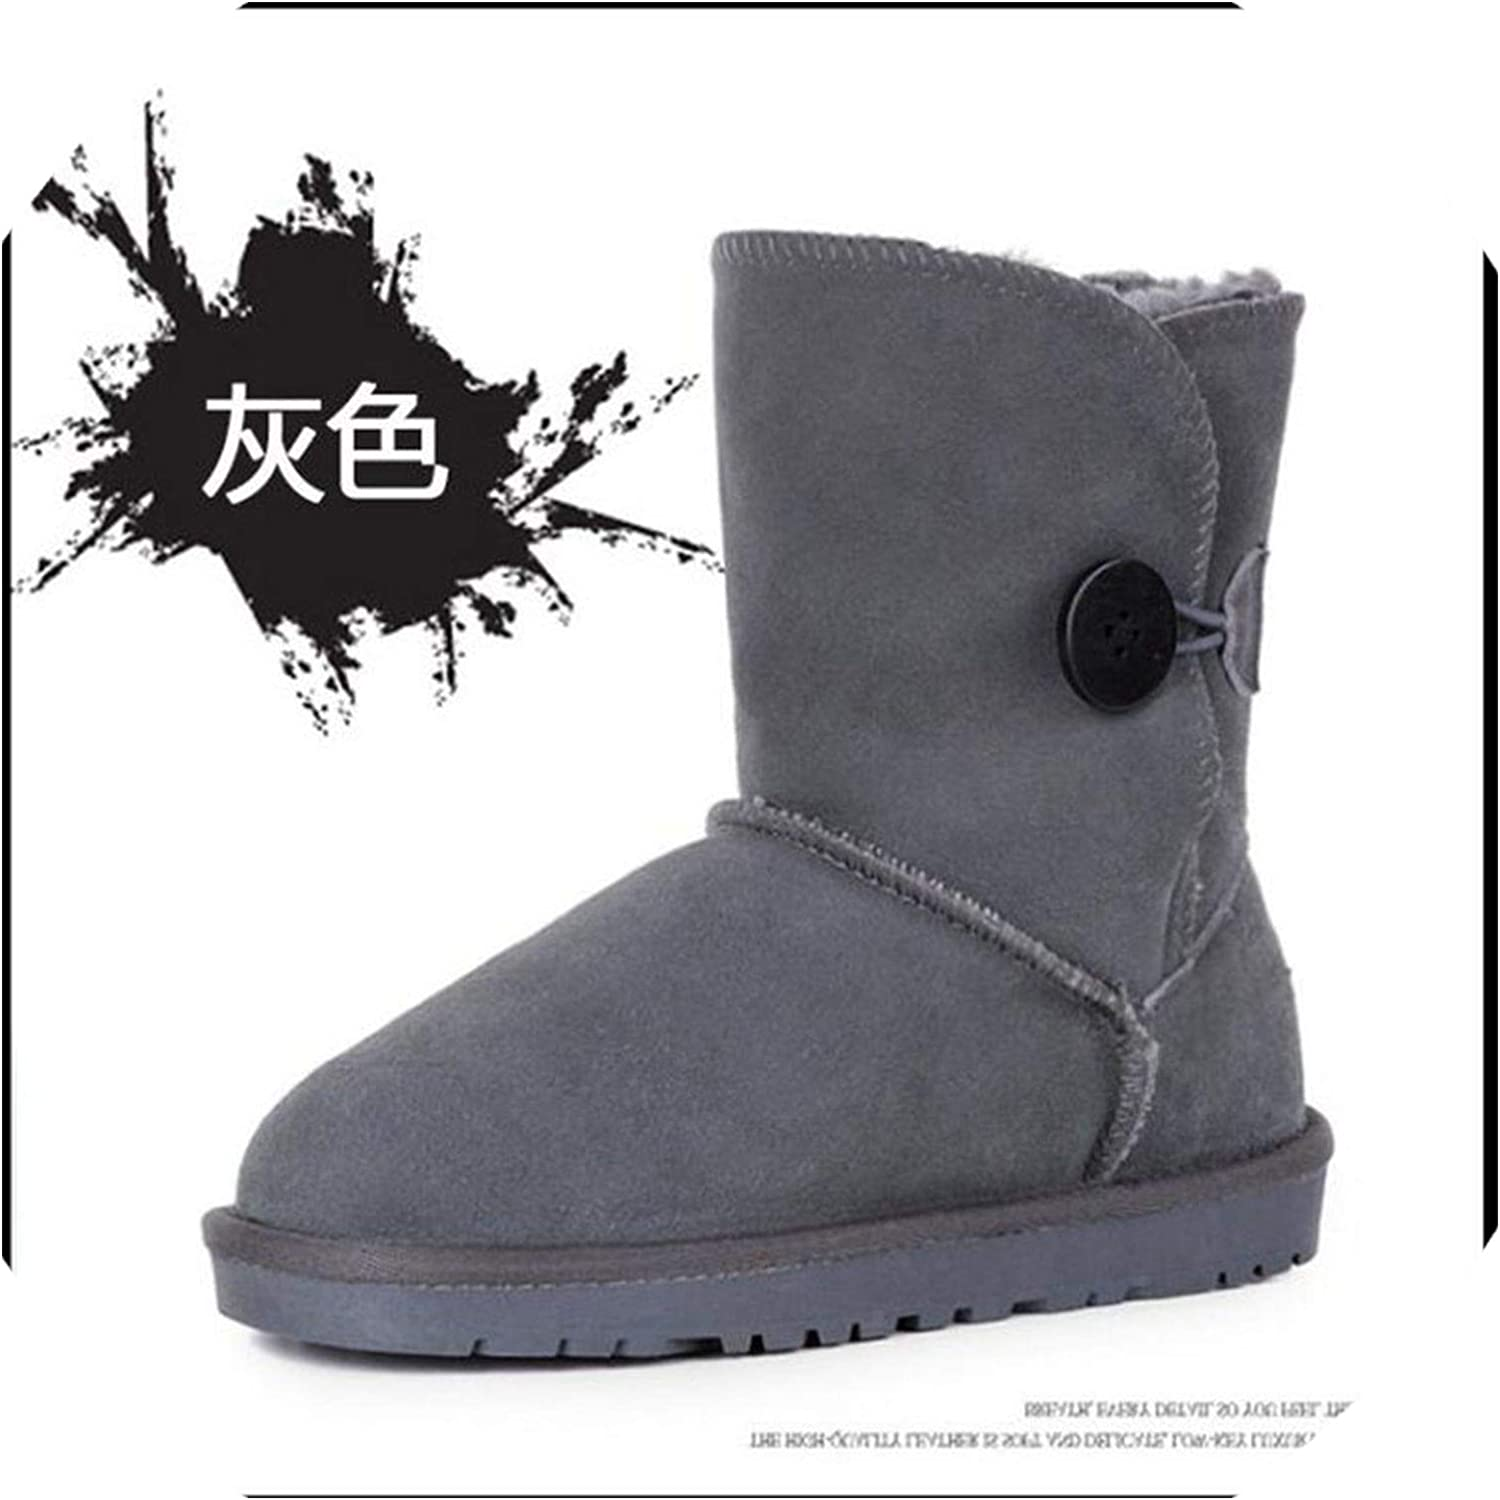 2018 Women Boots Australia Classic Style Snow Boots Button Leather Boots